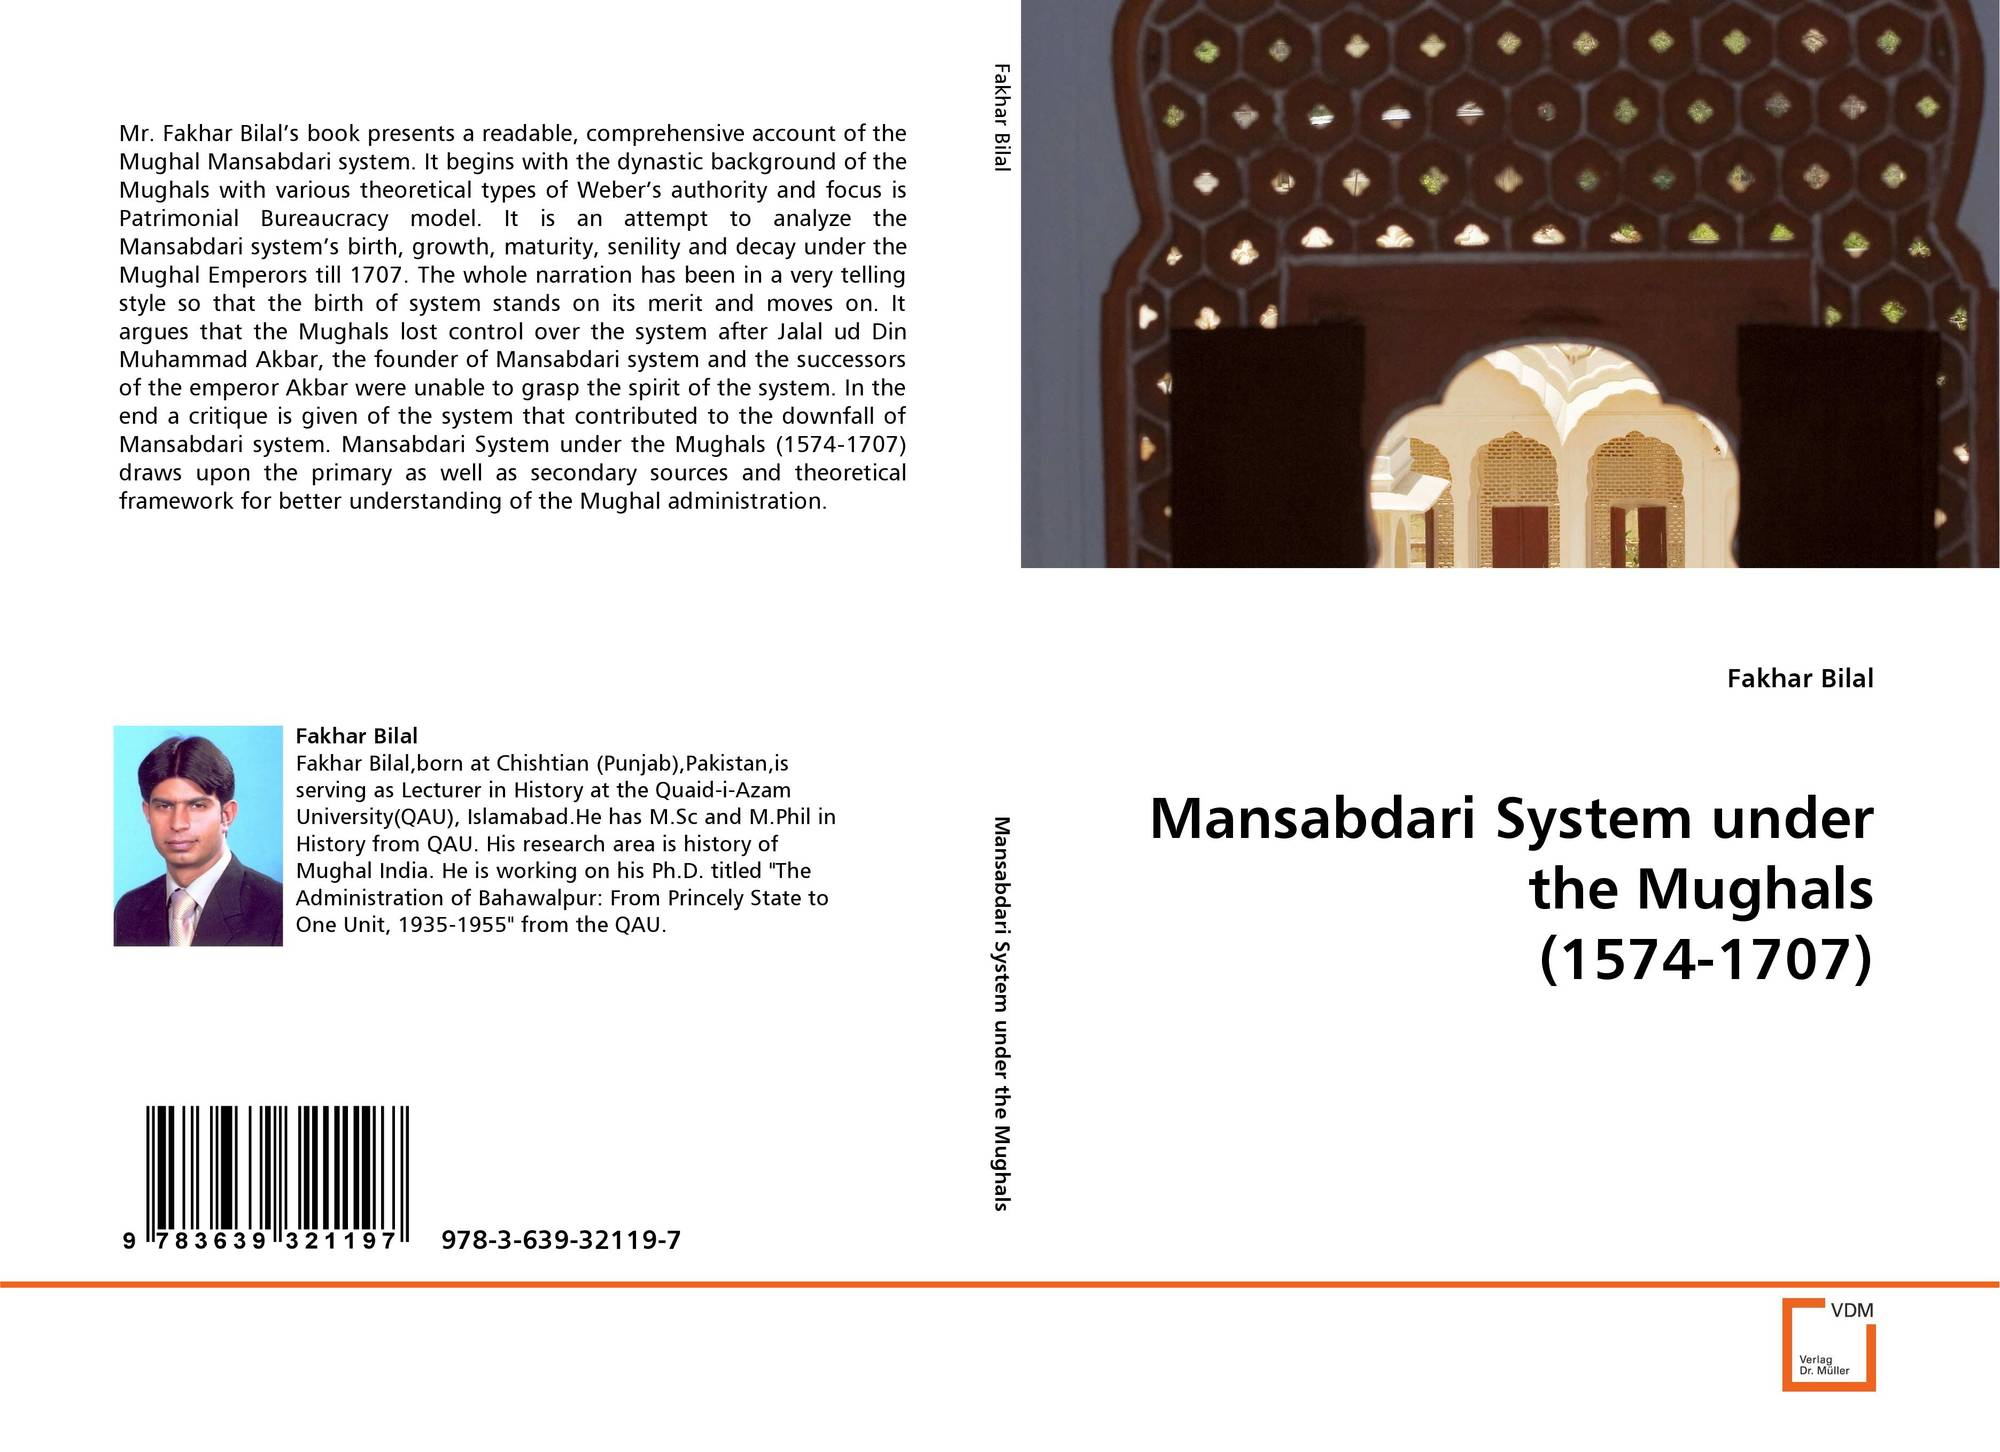 jagir system under mughals The success of the jagirdari system depended on the ability of jagirdar   mughals were able to persuade the zamindars of north india, to cooperate   bhimsen says that during the last years of aurangzeb's reign, except few,.